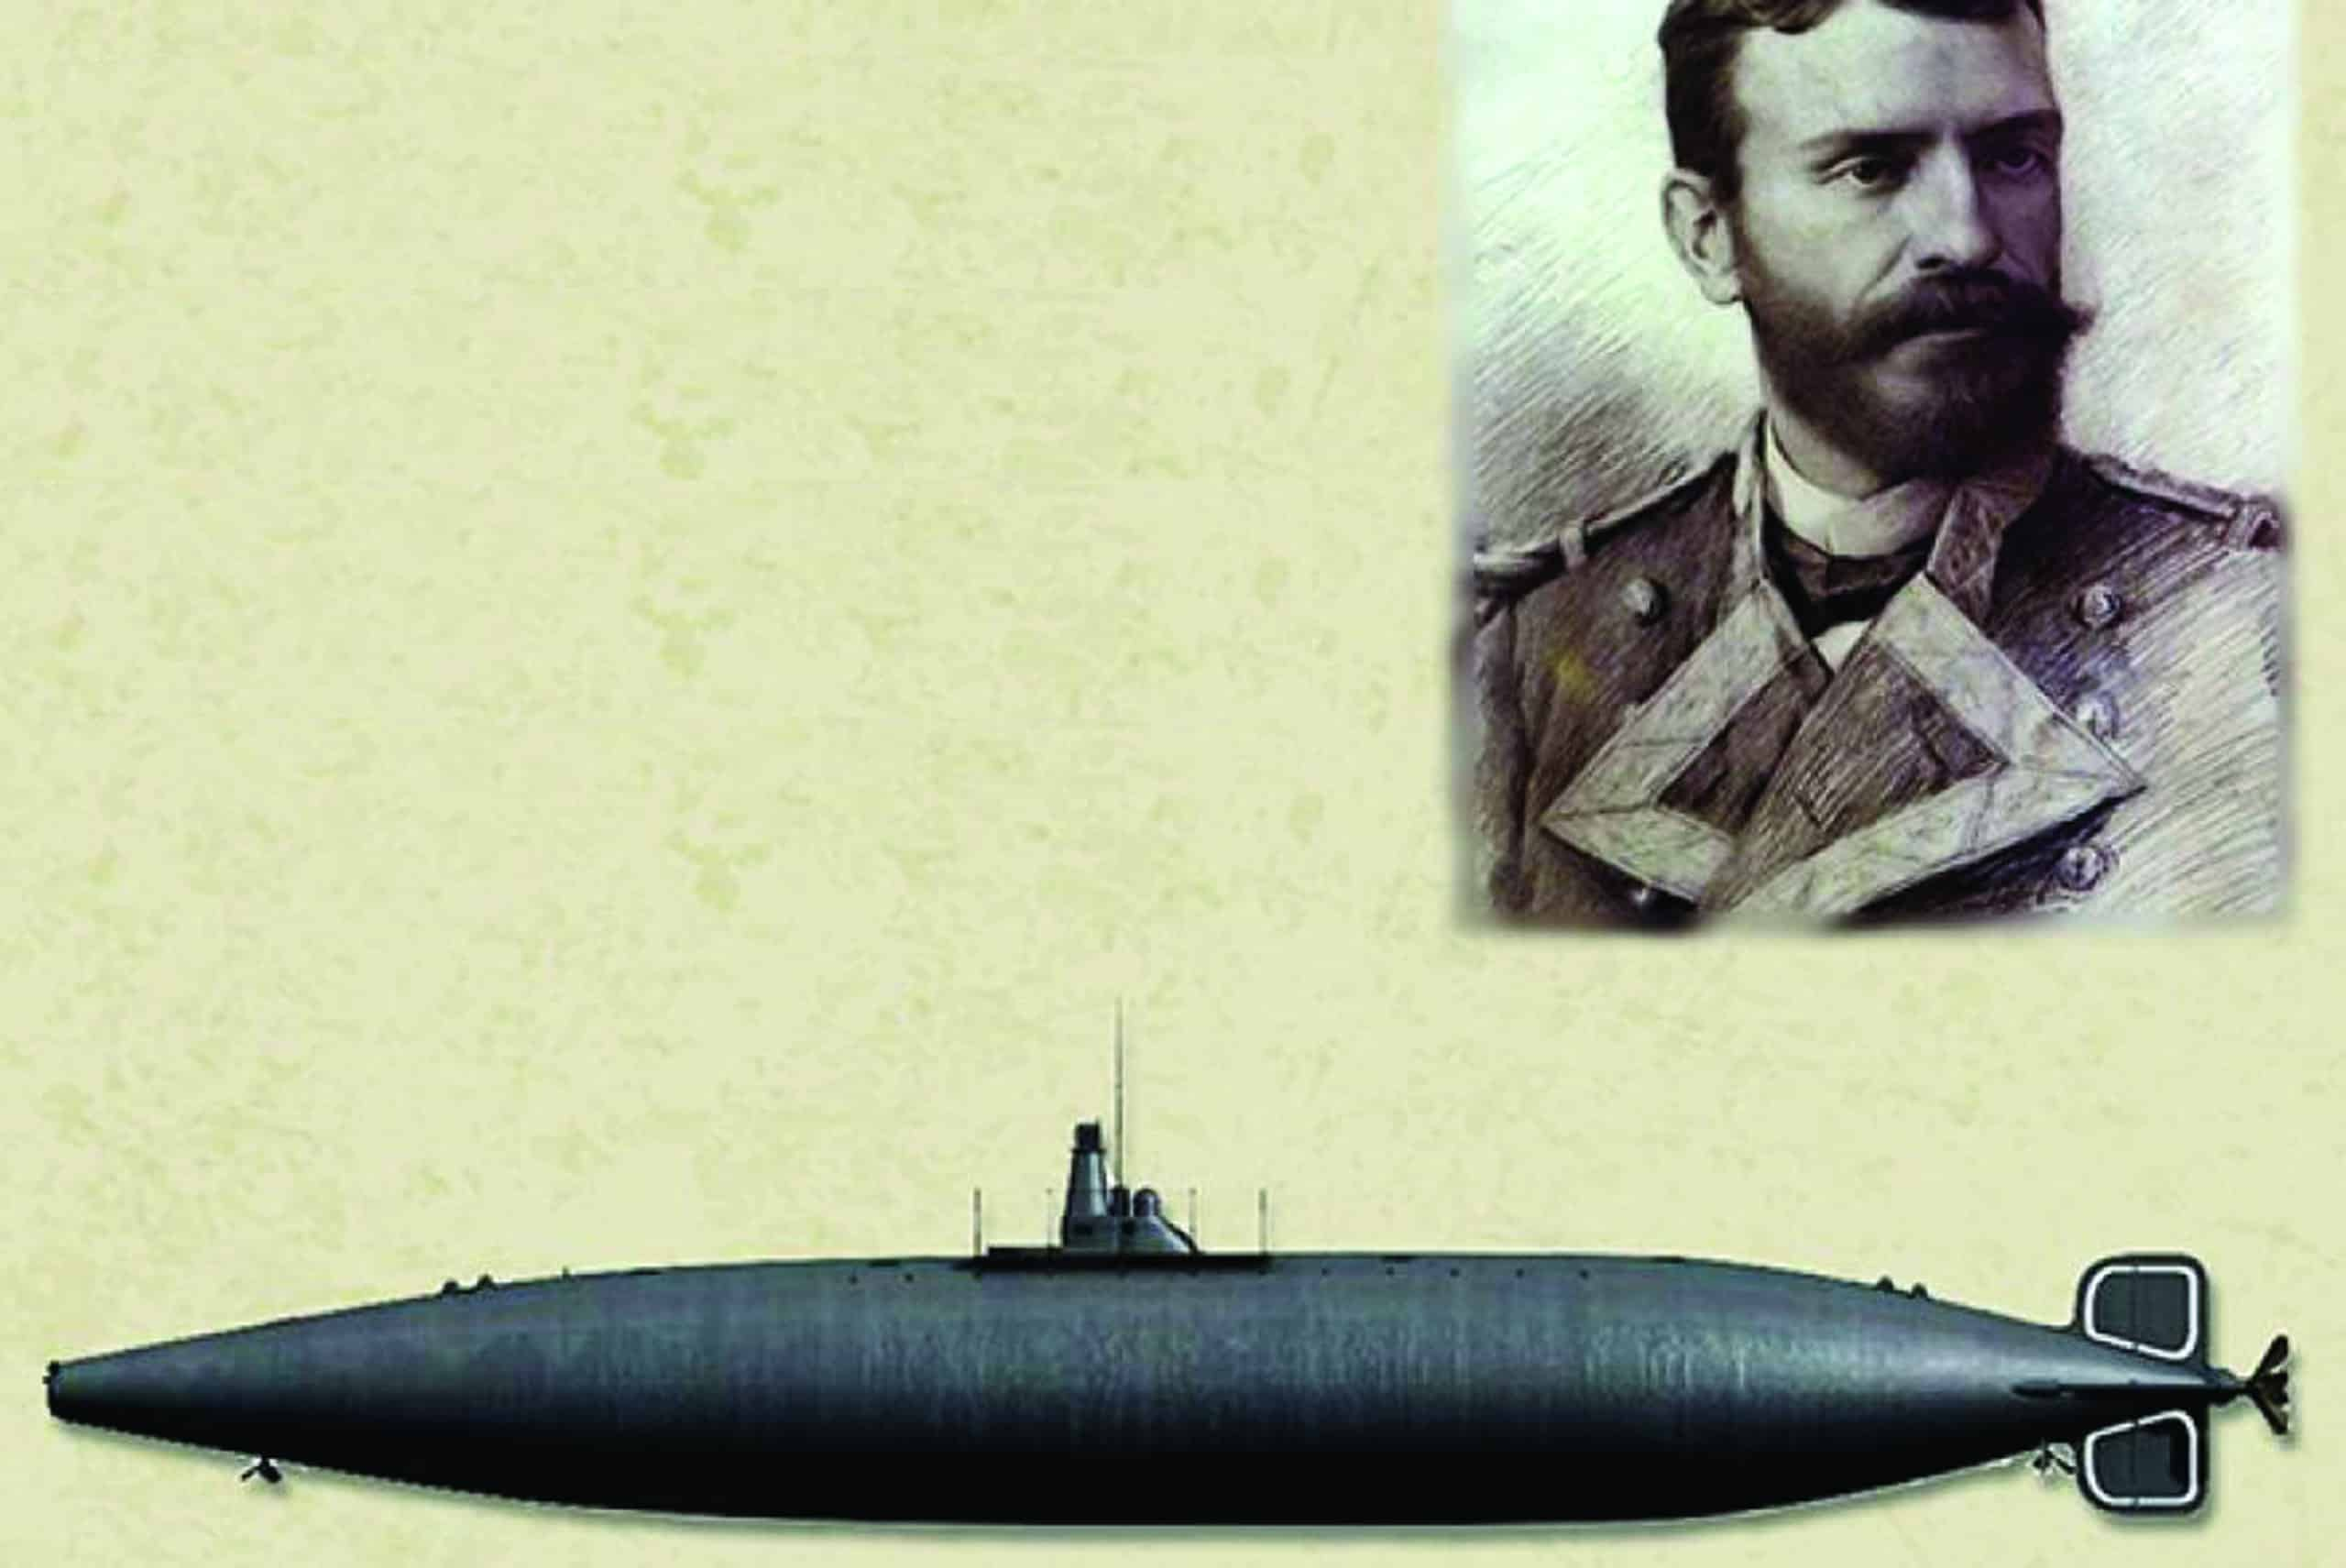 Isaac Peral, the inventor of the submarine, who hails from Cartagena.